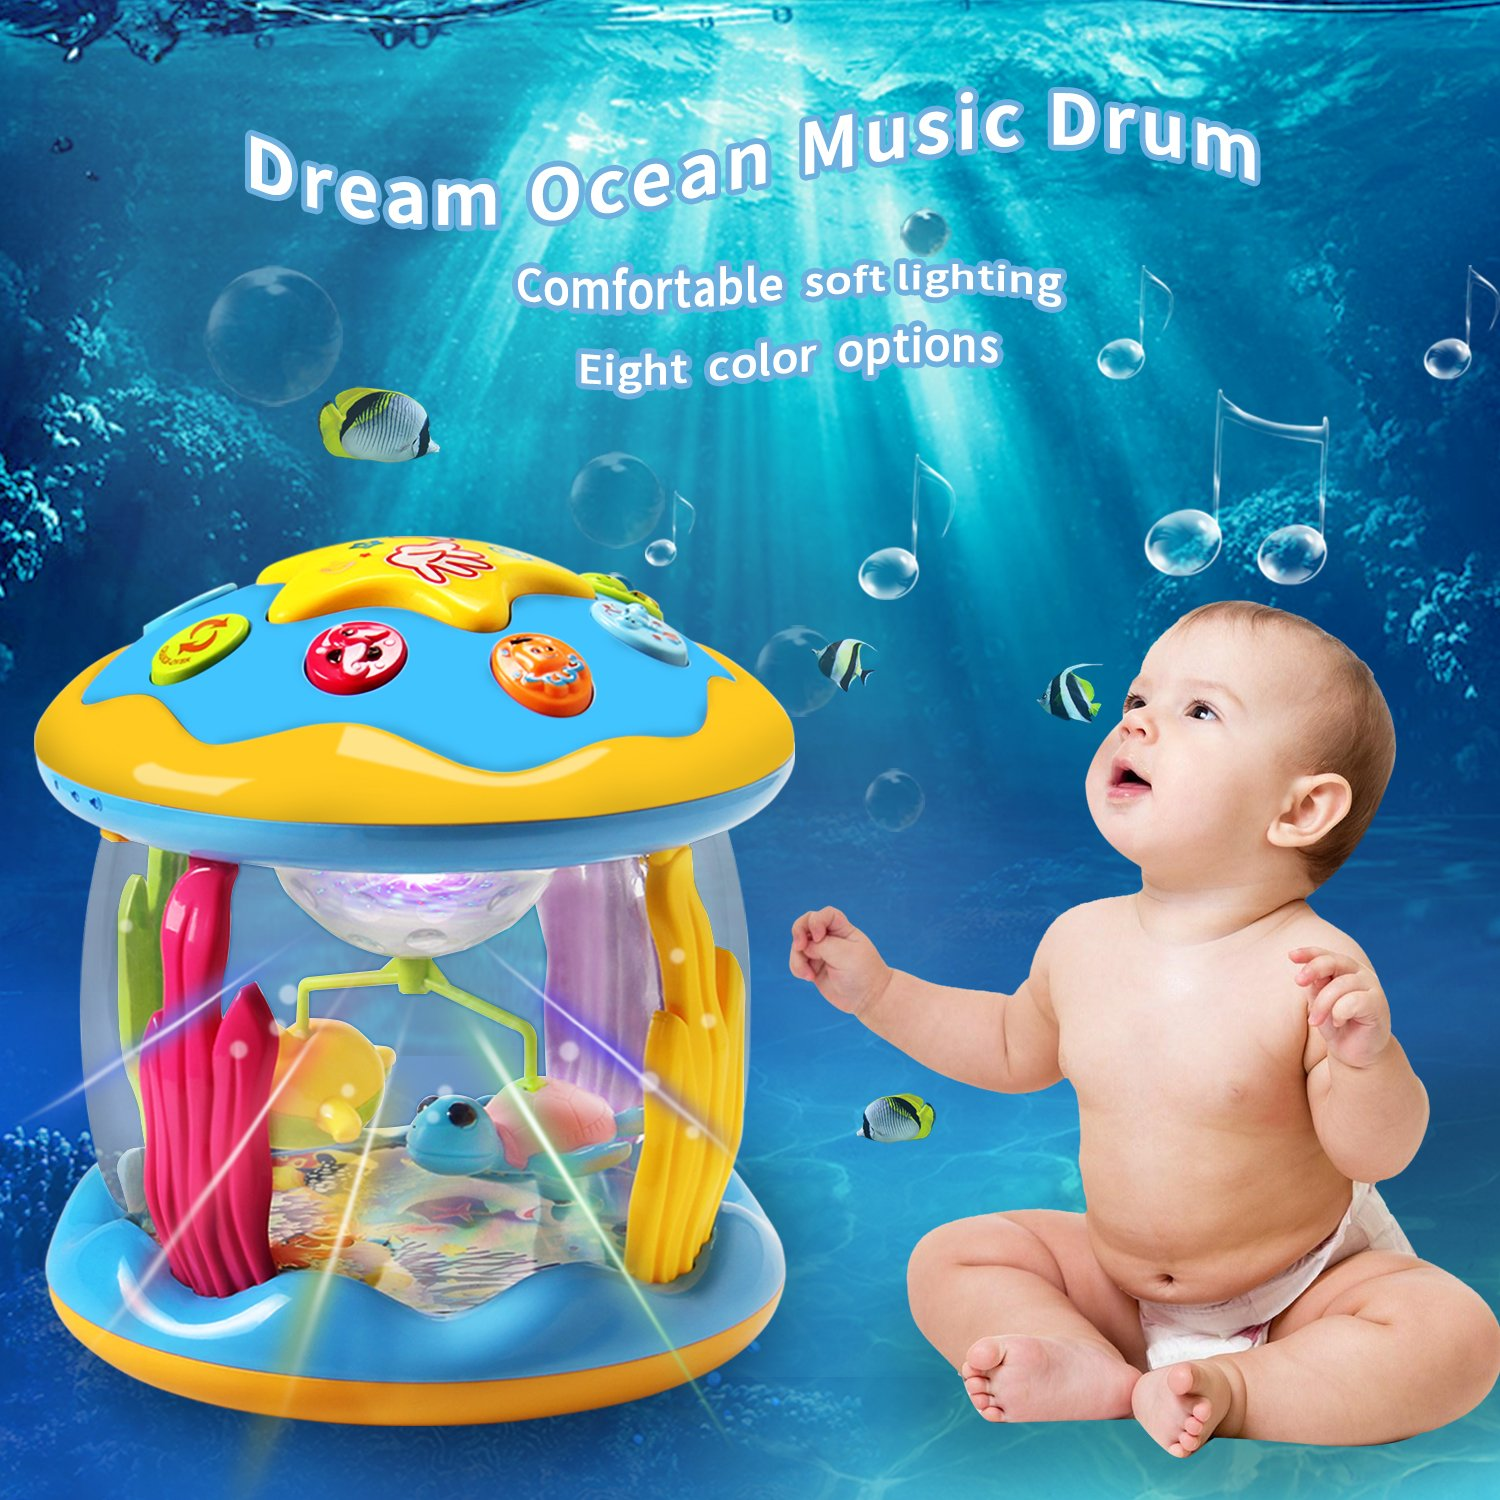 HOMOFY Baby Toys Ocean Park Rotating Projector,Various Pacify Music & Light,Super Fun,Early Educational Toys for 1 2 3 Year Girls and Boys Kids or Toddlers(BEST GIFTS) by HOMOFY (Image #1)